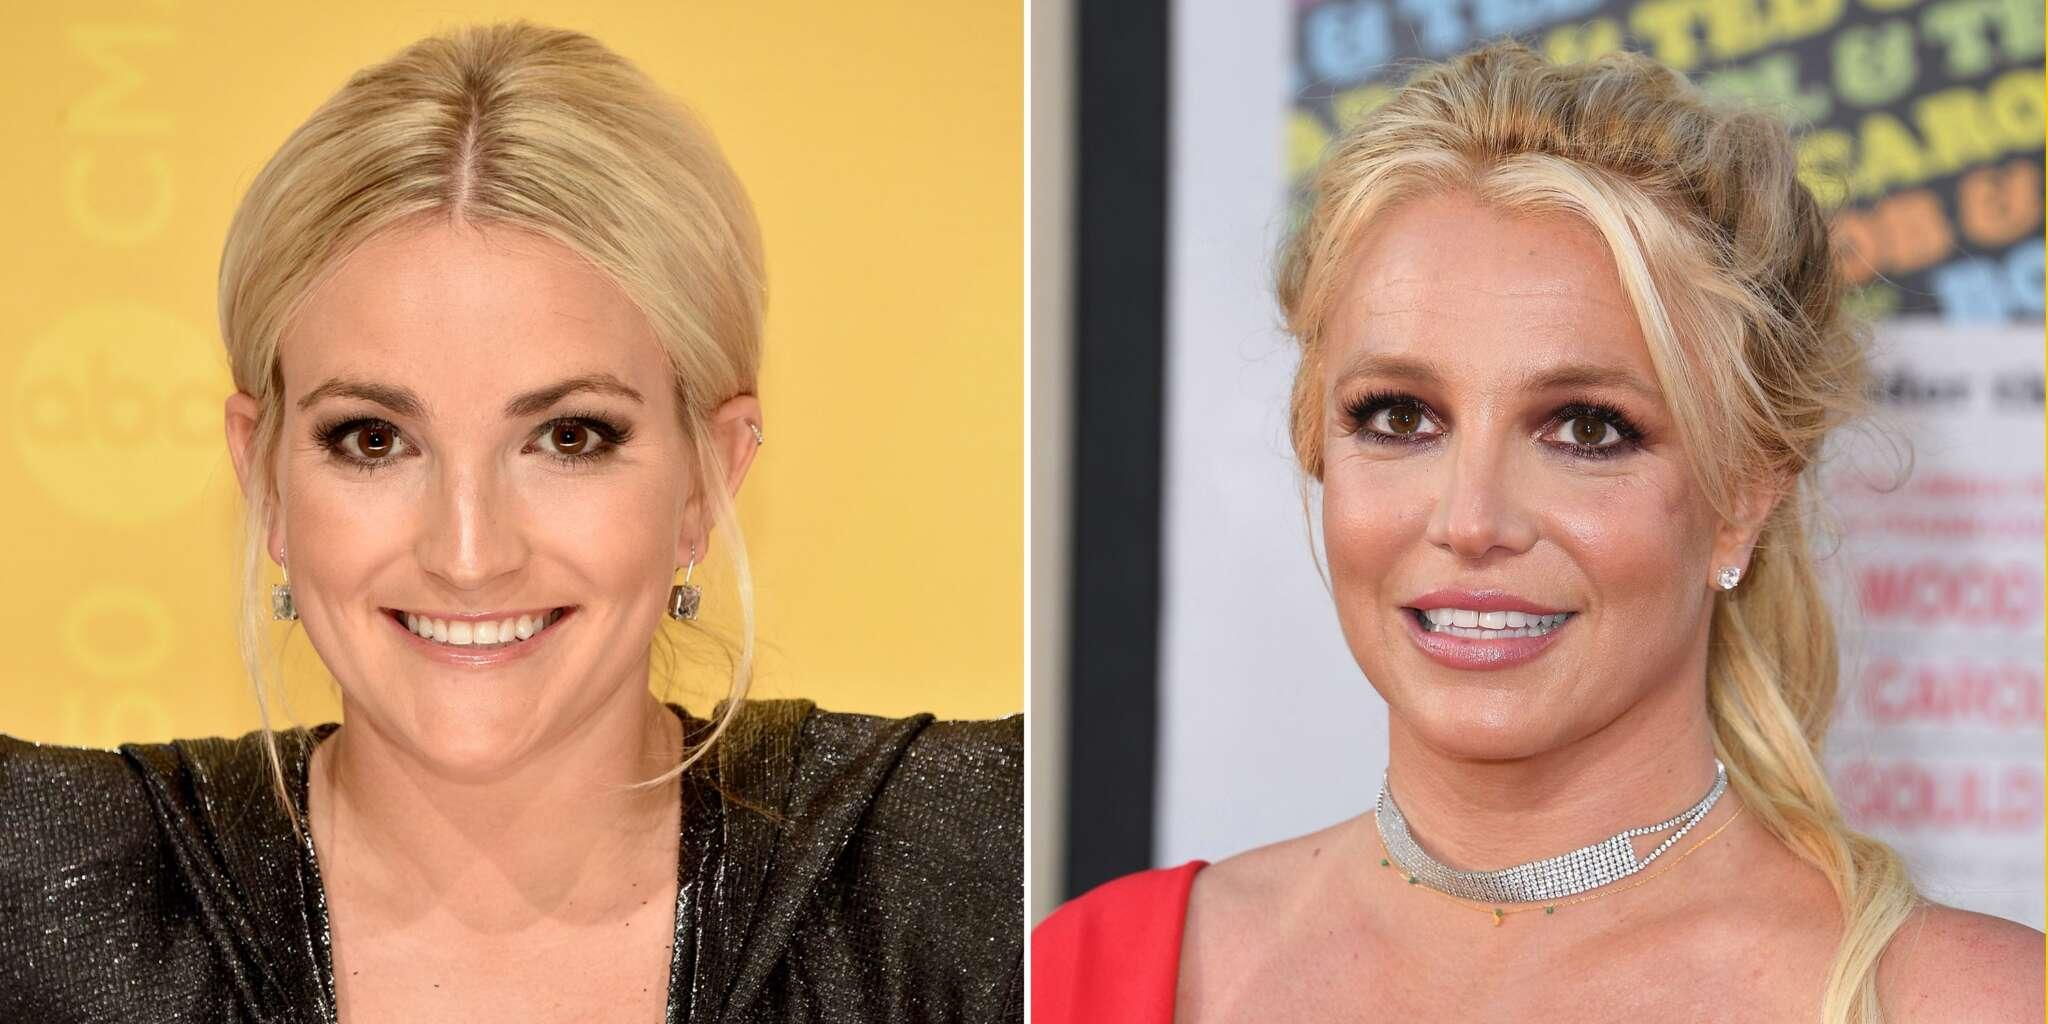 Jamie Lynn Spears Explains Why She Didn't Also Become A Pop Star Like Britney Spears